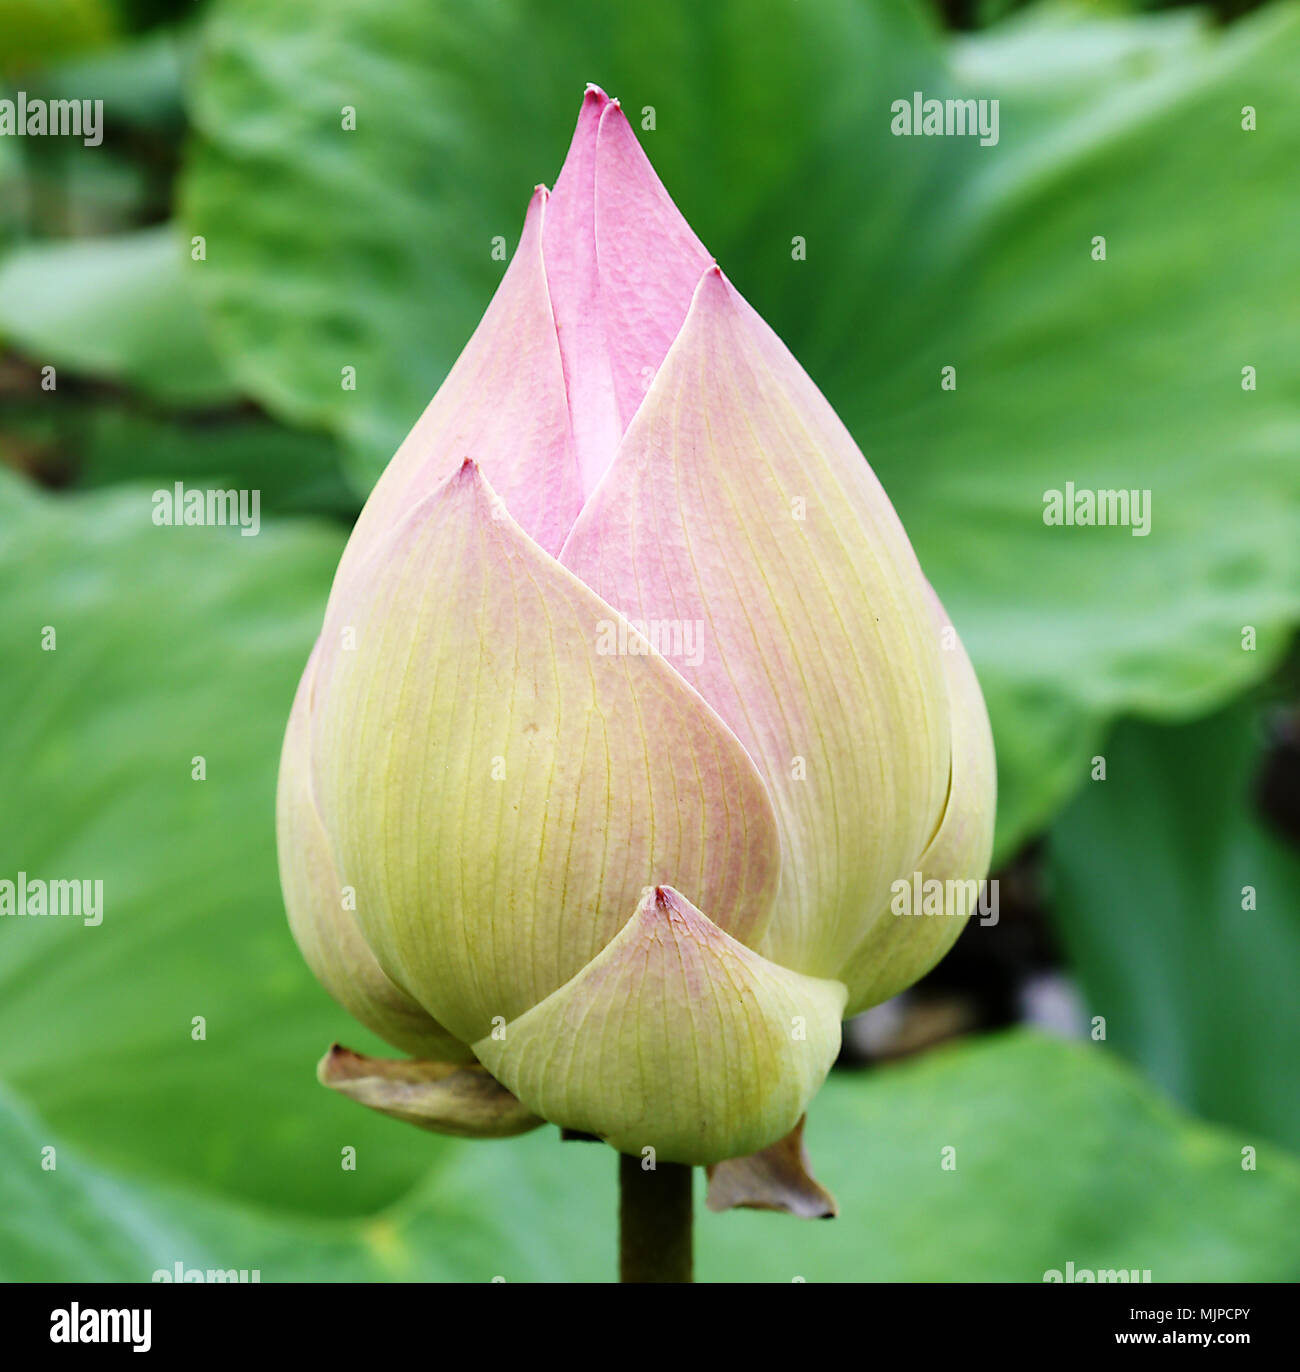 The Lotus Is National Flower For Thailandindiakampuchea And Bengal